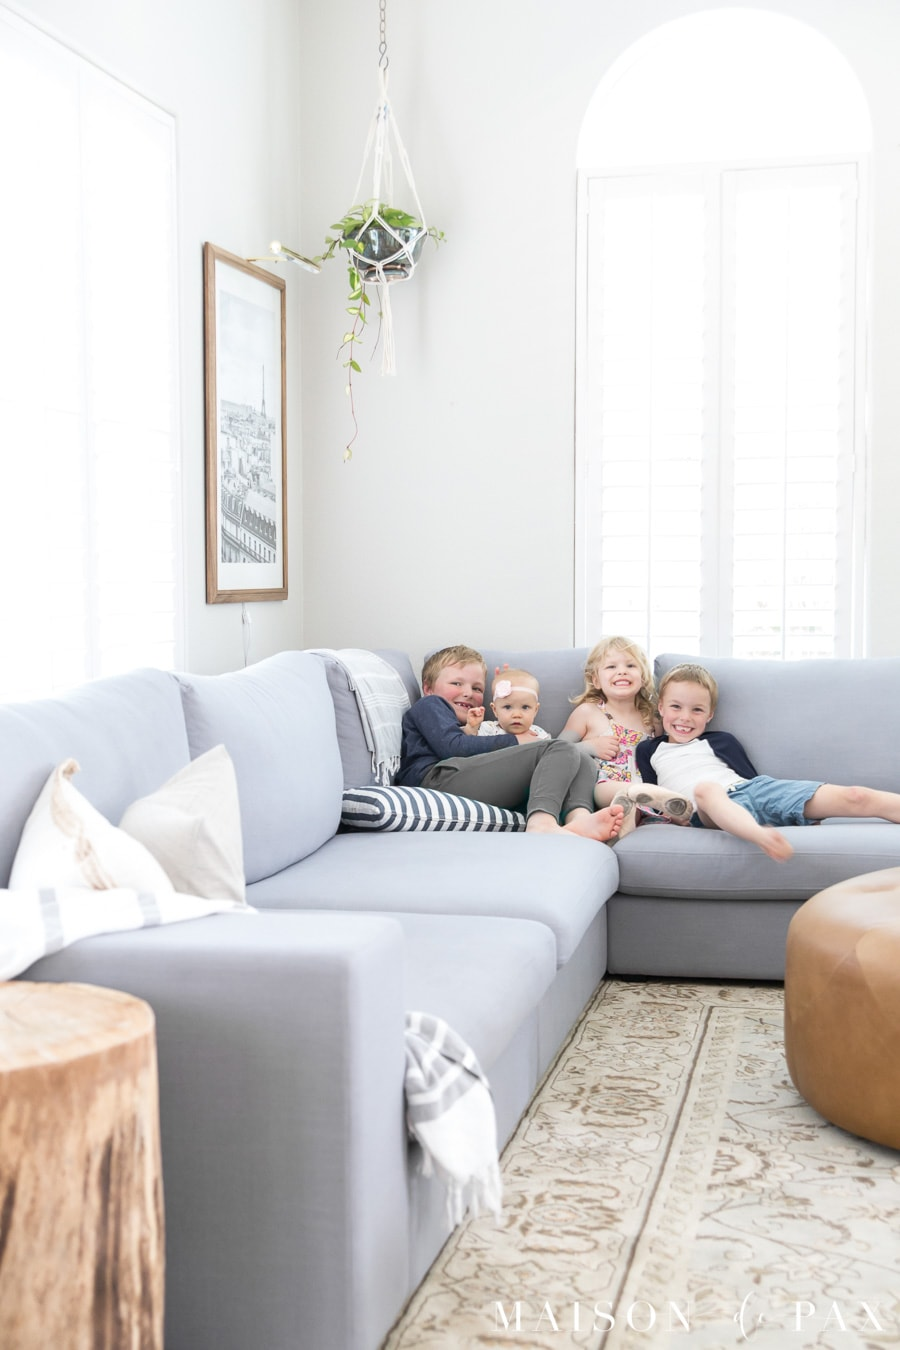 how to decorate a living room with a sectional maison de paxthis huge gray sectional is perfect for a family room! find out how to decorate